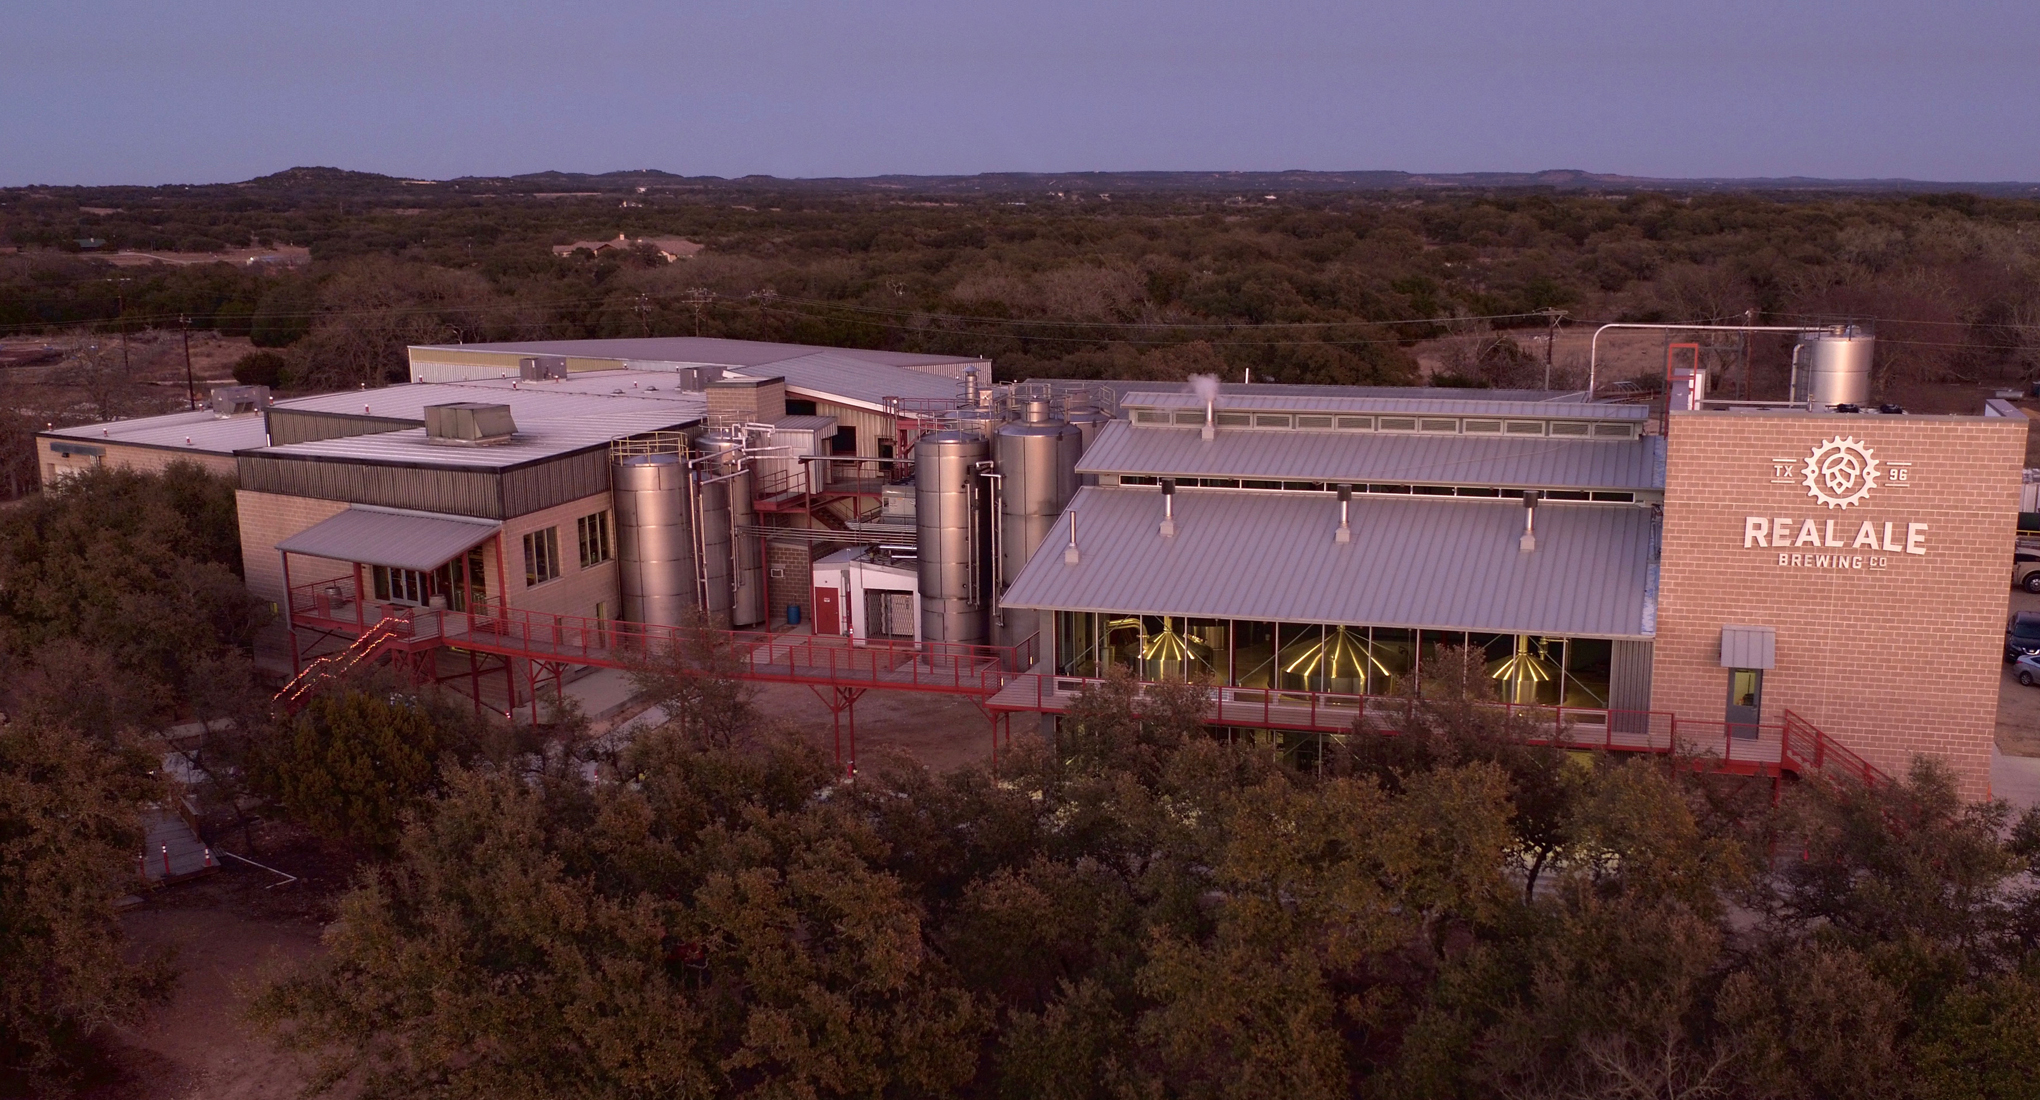 Photo courtesy of Real Ale Brewing Company, Blanco, TX